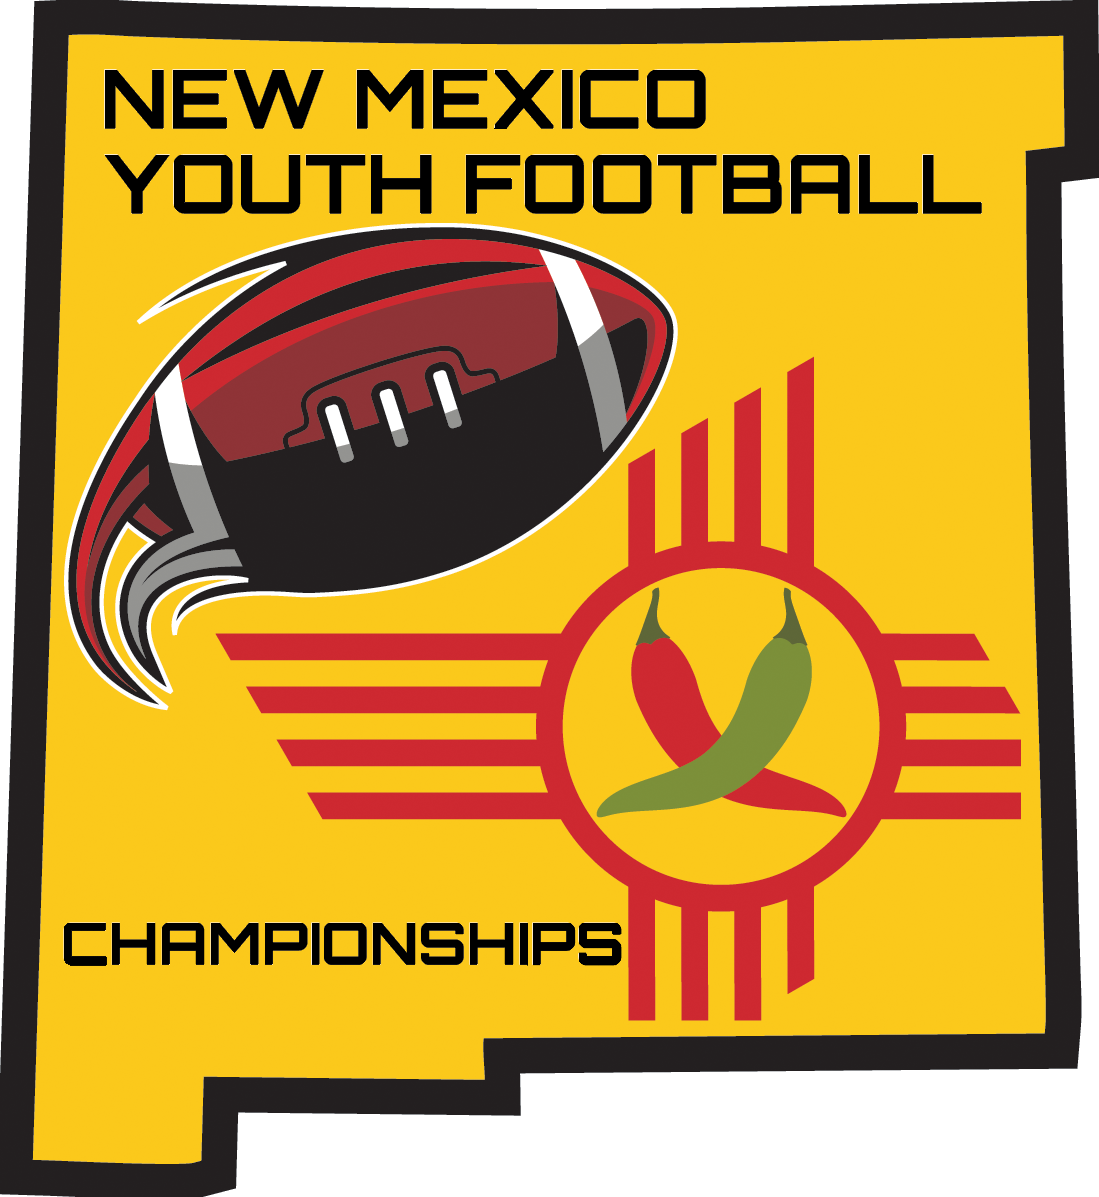 New Mexico Youth Football Championships